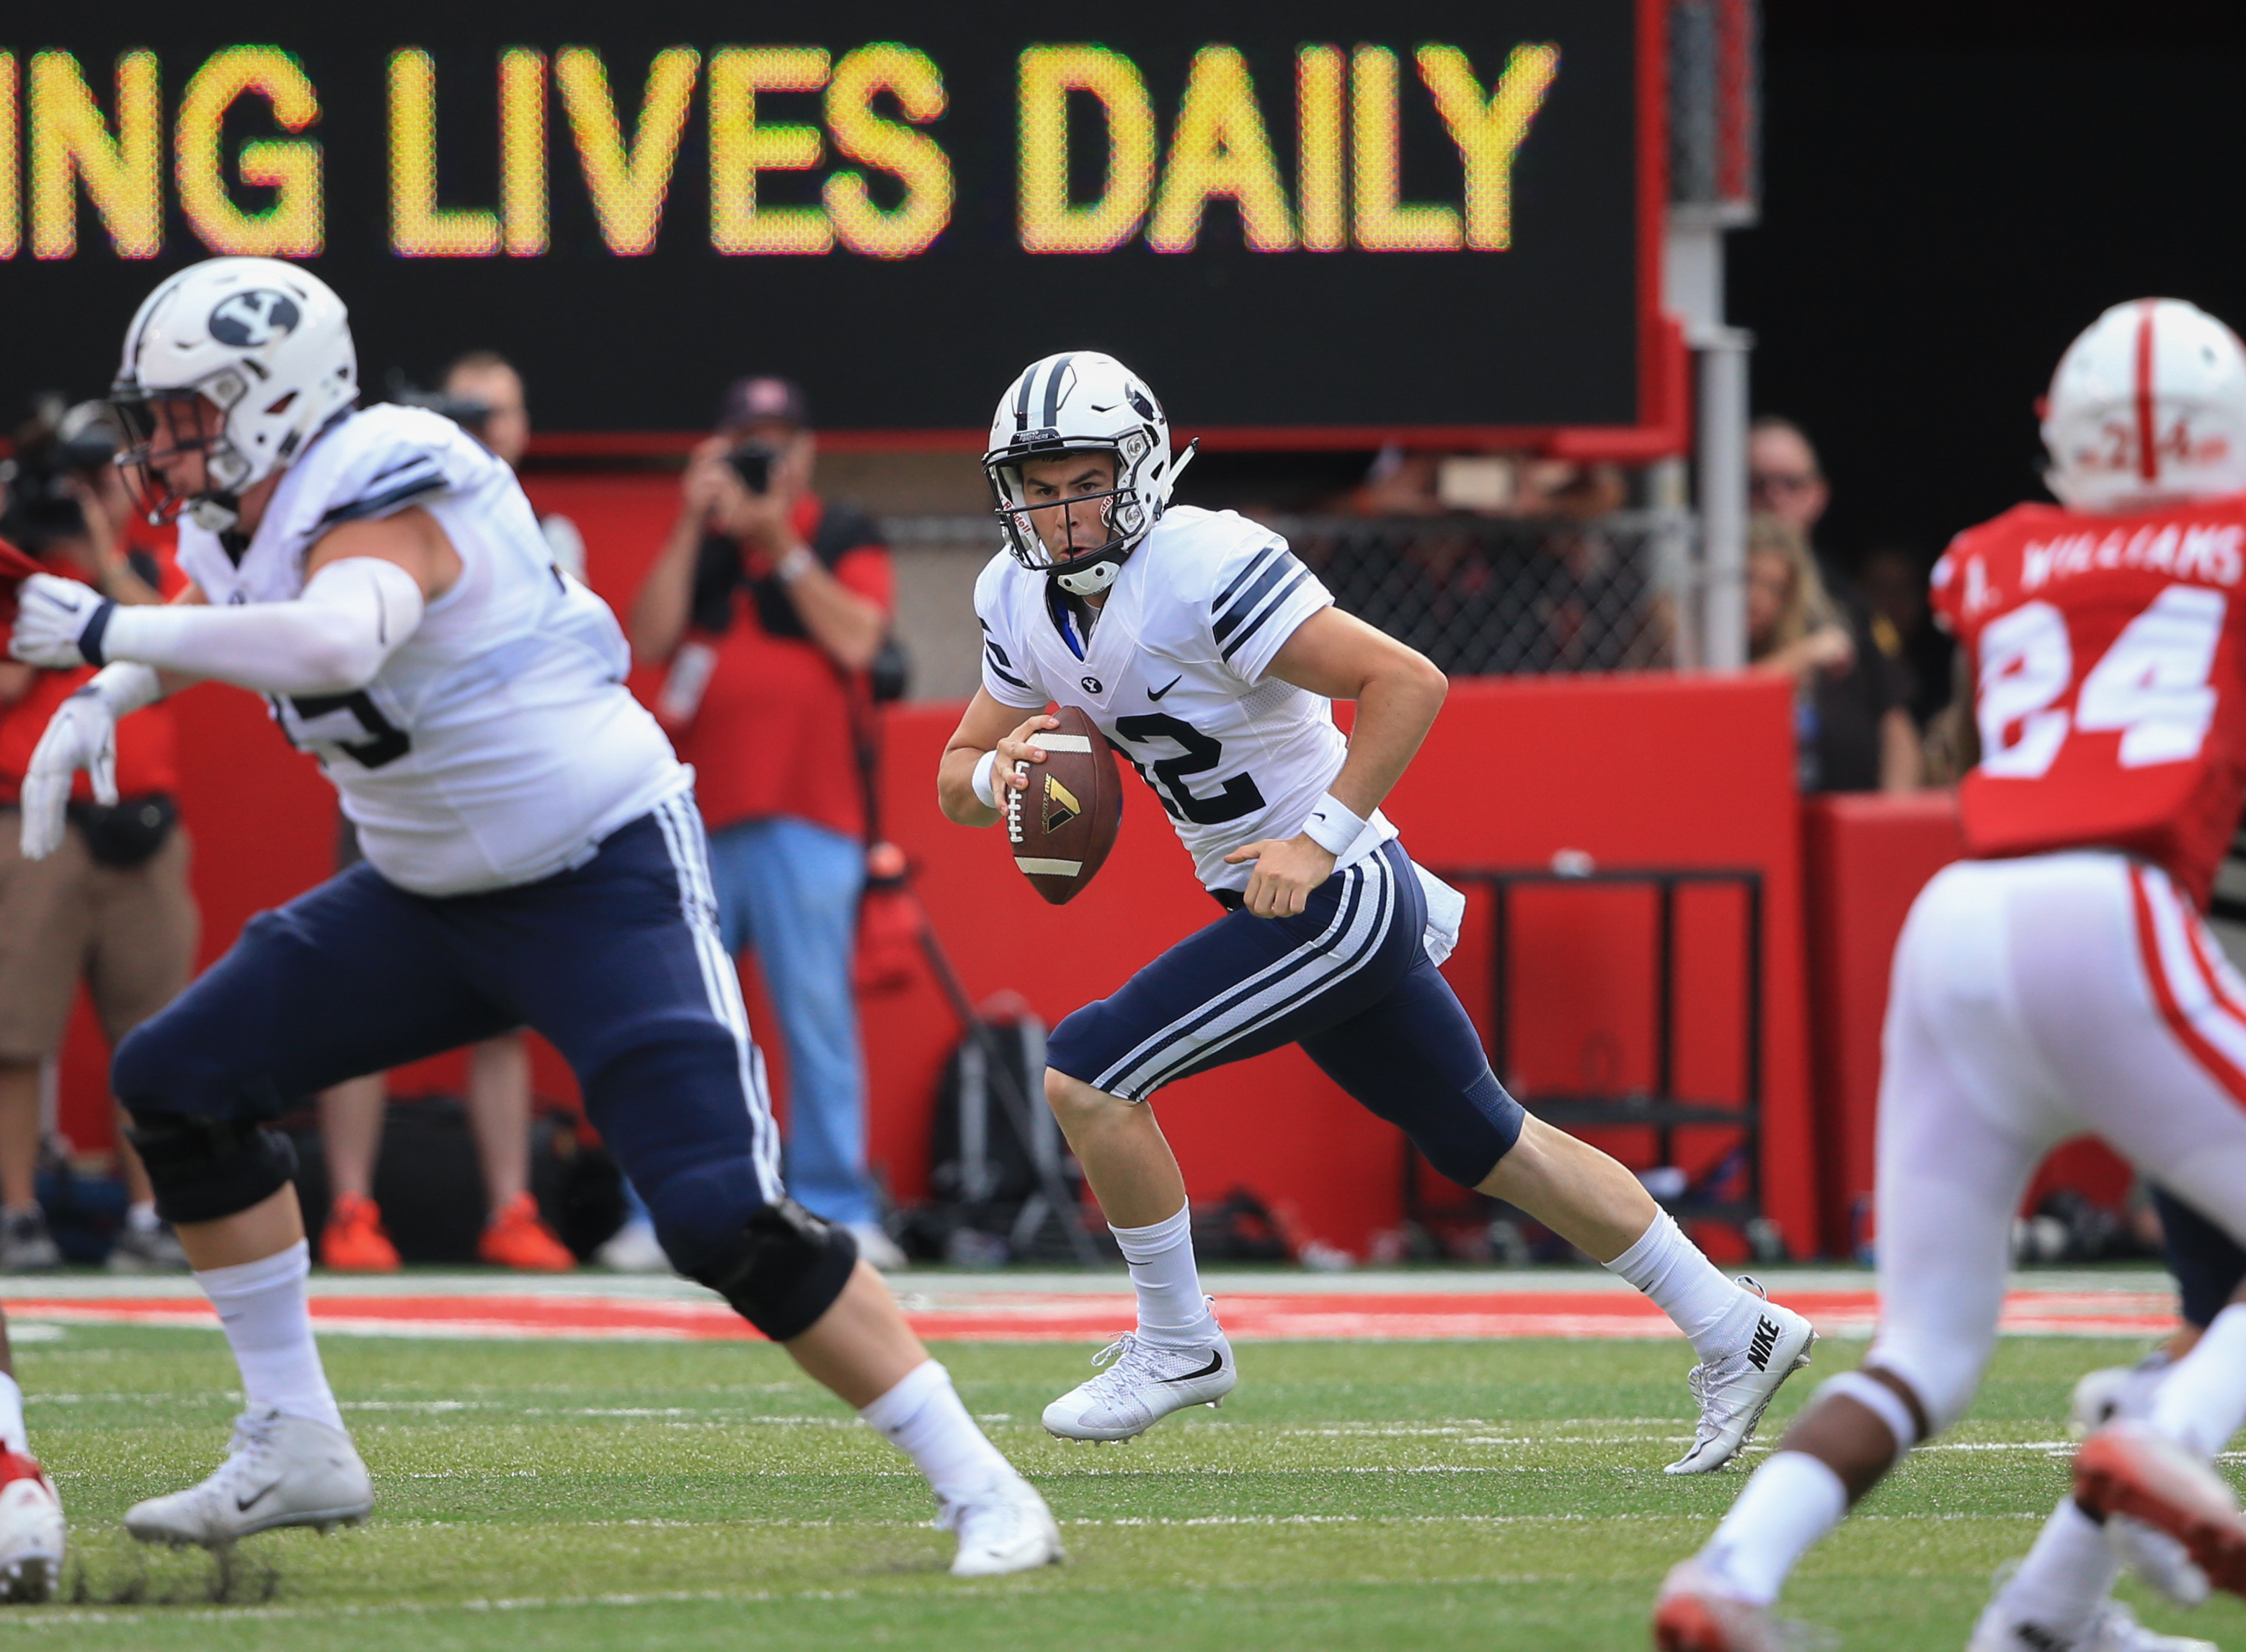 Tanner Mangum runs with the ball during the first half of the Nebraska game on Sept. 5. The Big Ten Conference made a policy change that may result in BYU playing more Power Five teams. (AP Photo/Nati Harnik)